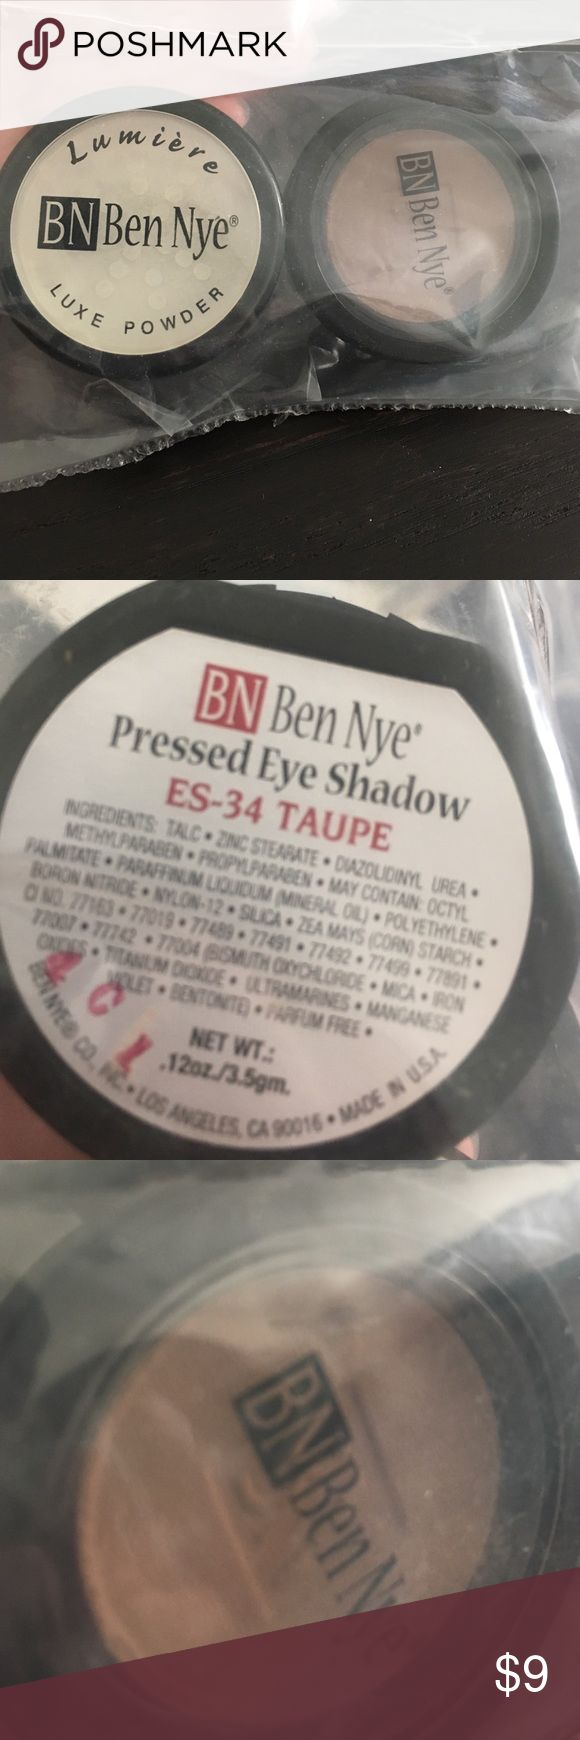 Package of Ben Nye Luxe powder & taupe eyeshadow Two products! Great matte shadow in a compact (but just a refill) & the ultra bright lumiere powder. Ben Nye Makeup Eyeshadow